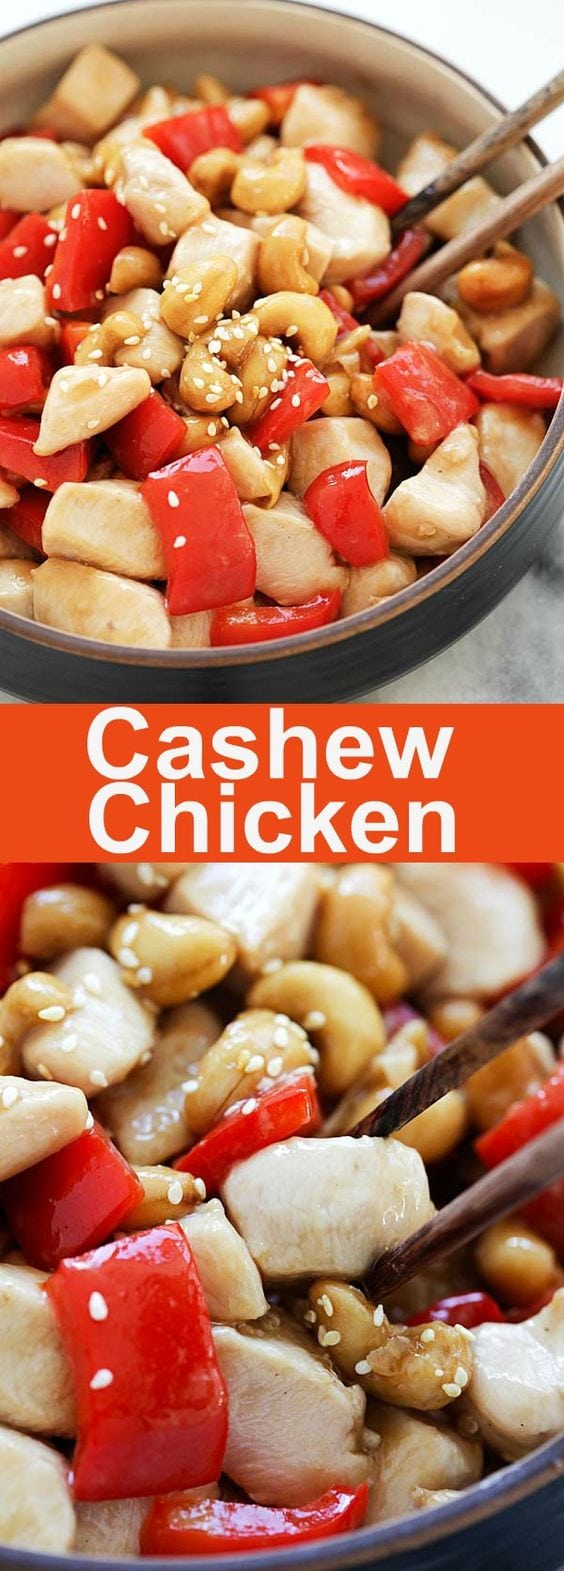 Cashew Chicken - crazy delicious and easy cashew chicken recipe with tender and silky chicken in Chinese brown sauce. Homemade is so much better than takeout and it's perfect for busy weeknights | rasamalaysia.com